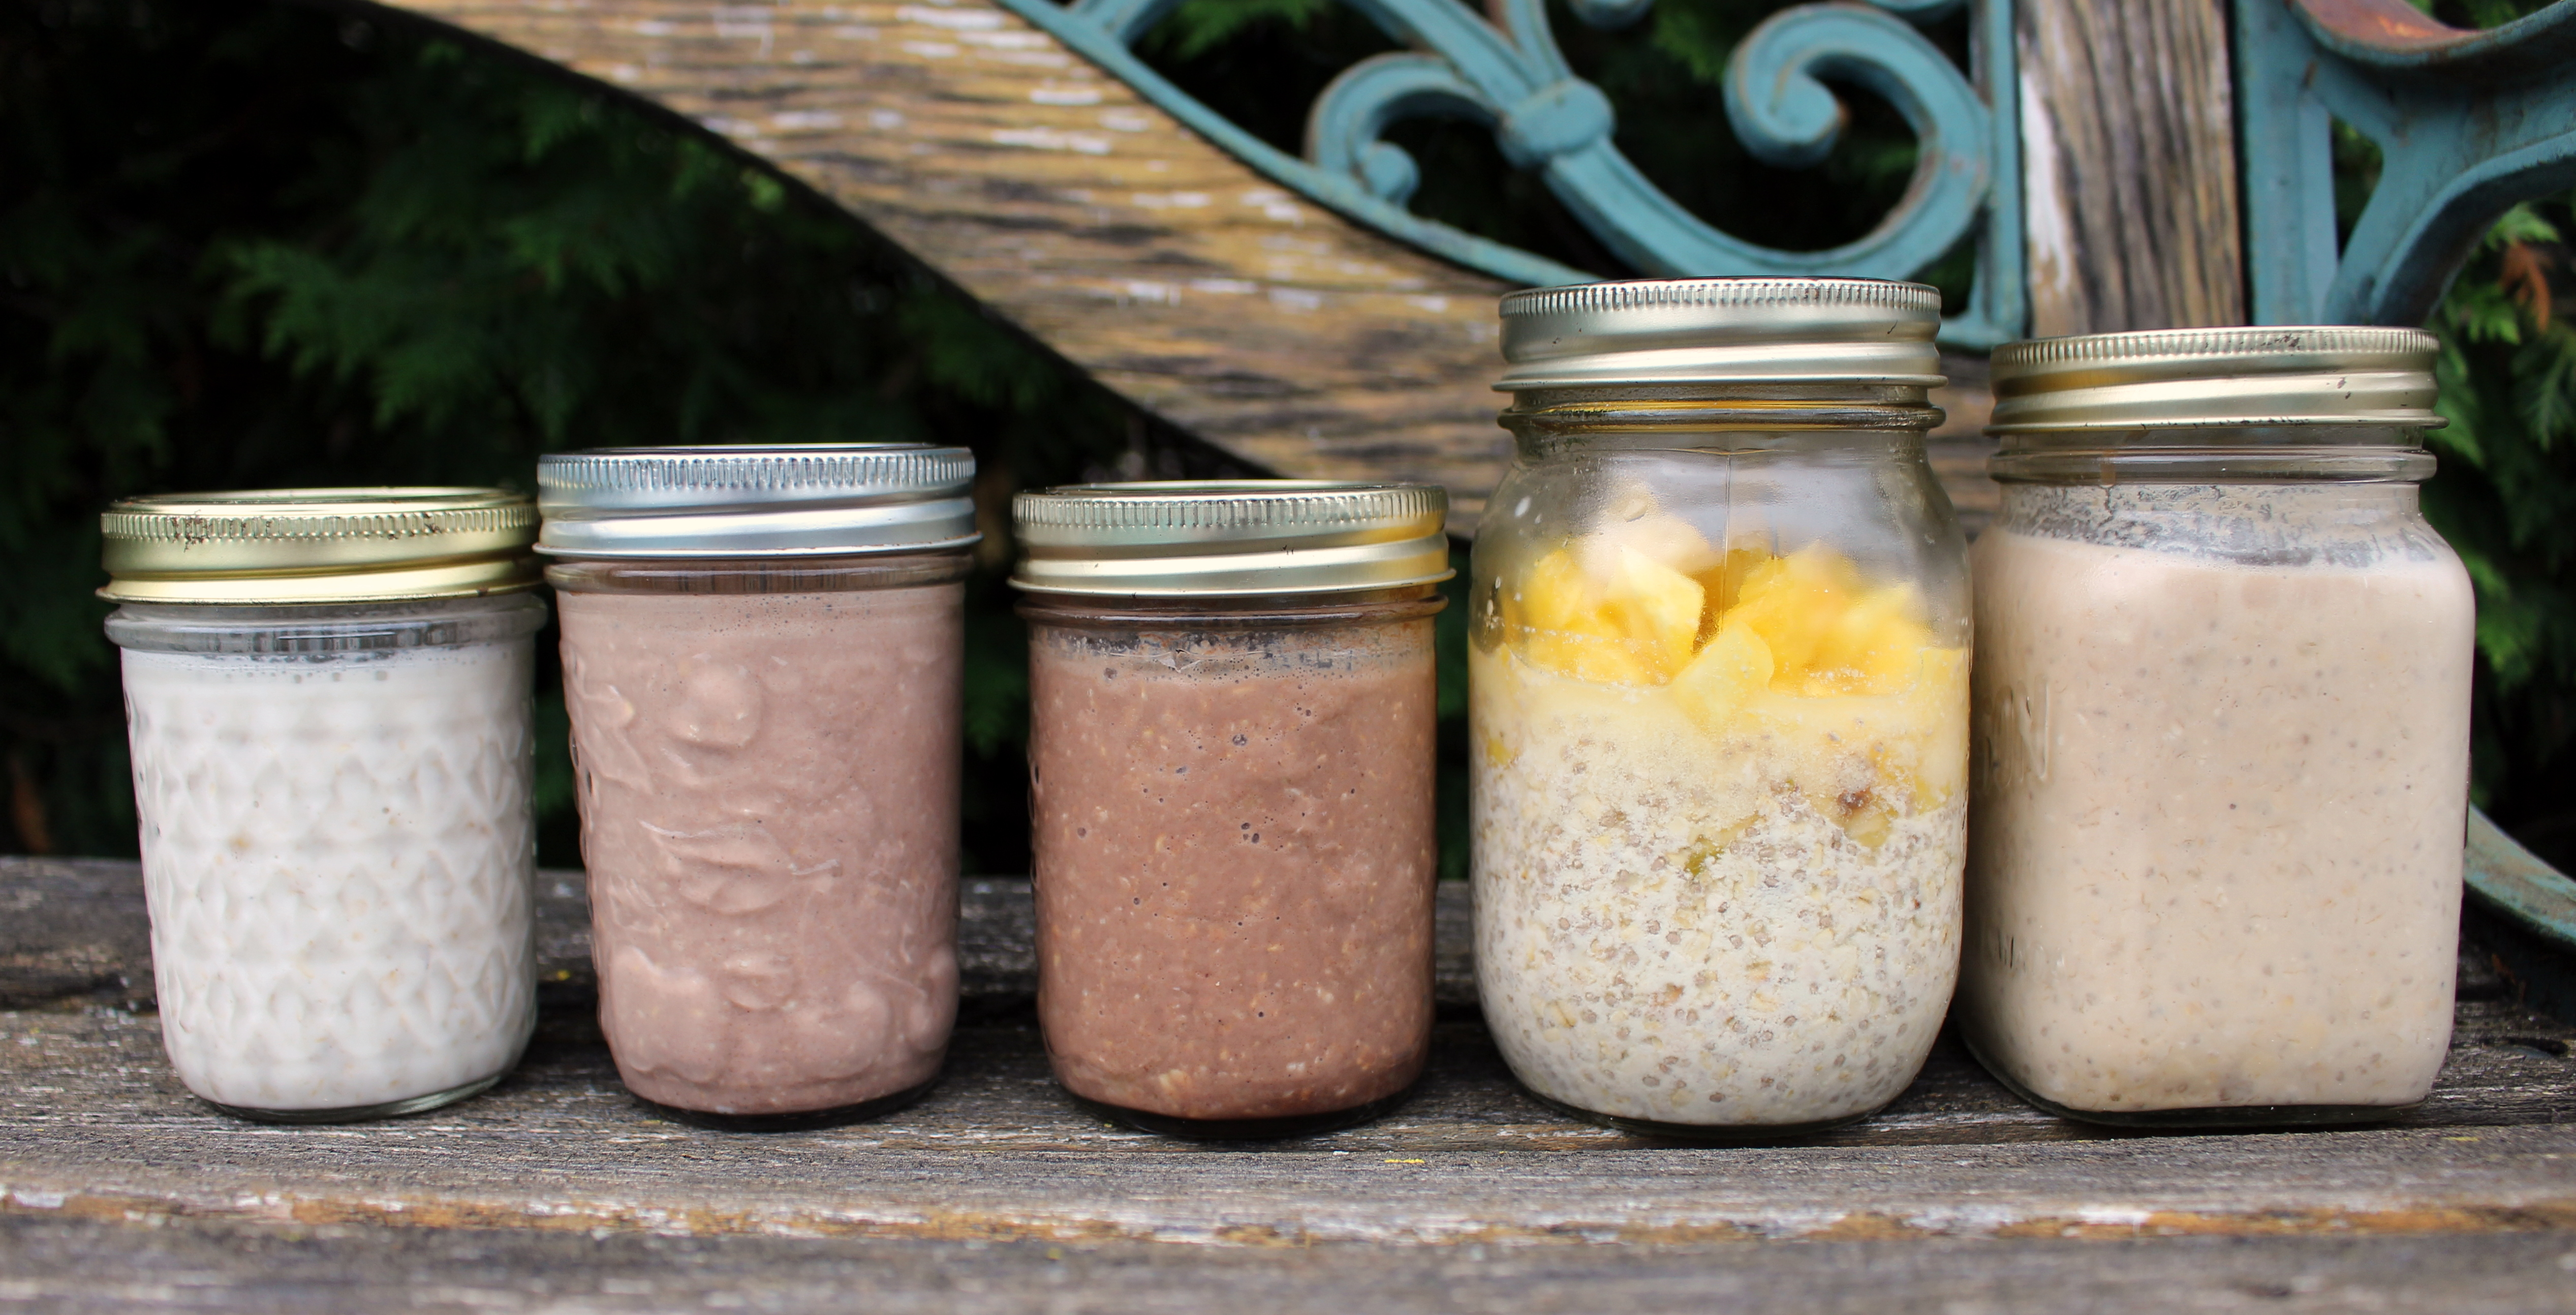 Refrigerator Oatmeal? You bet!